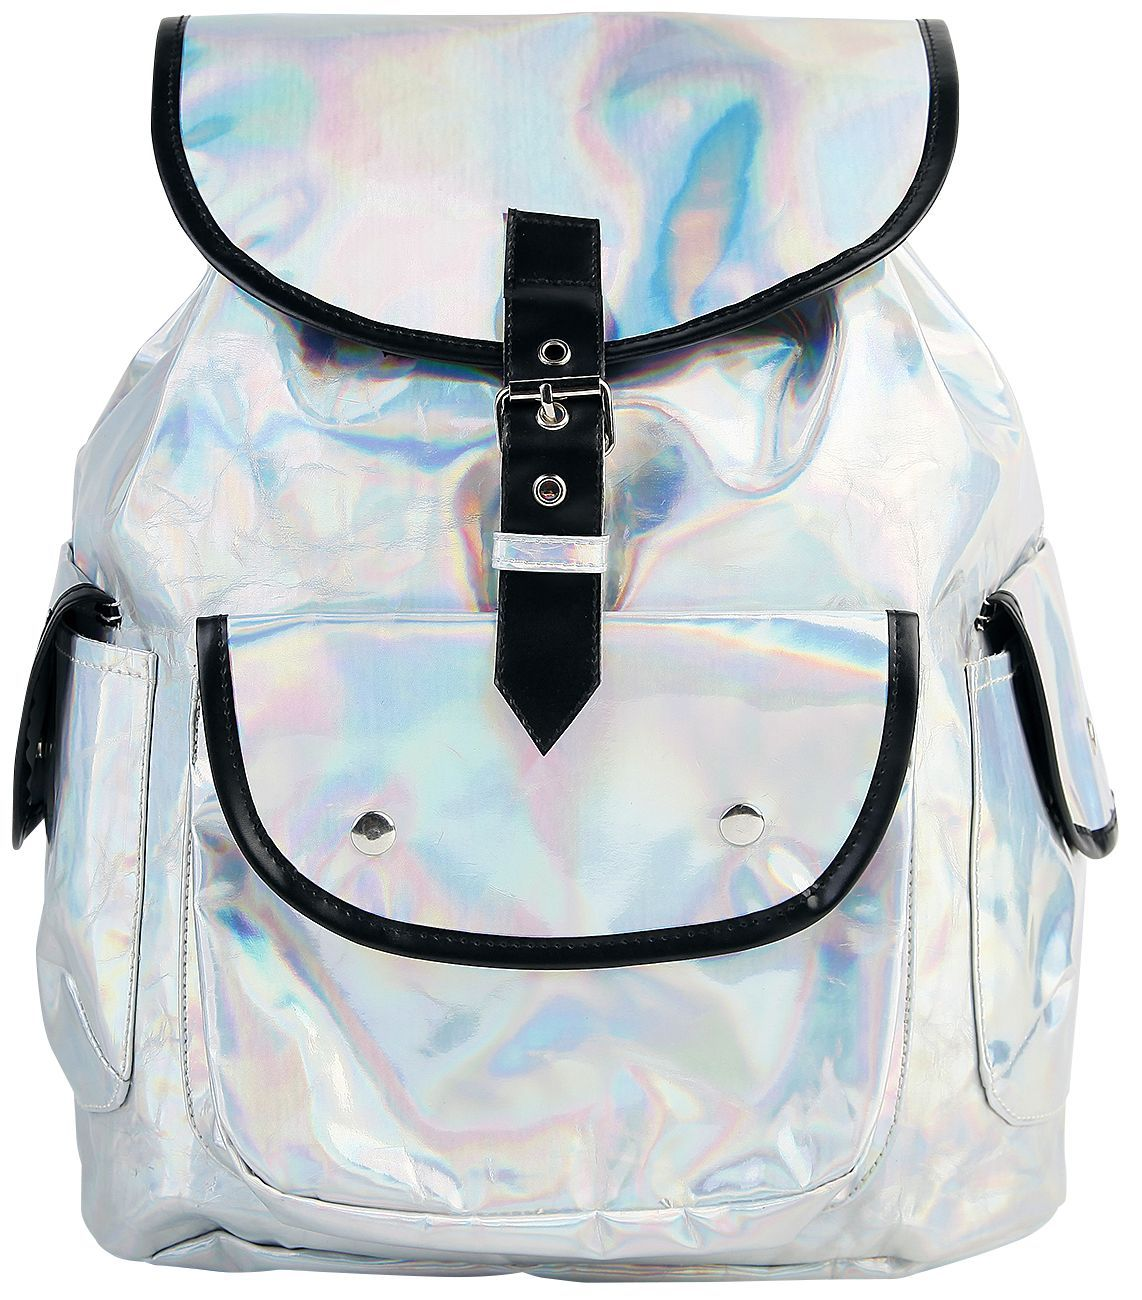 9cfe397377 Curly's Backpack | Senni - Vill Ha | Backpacks, Bags och Emp shop